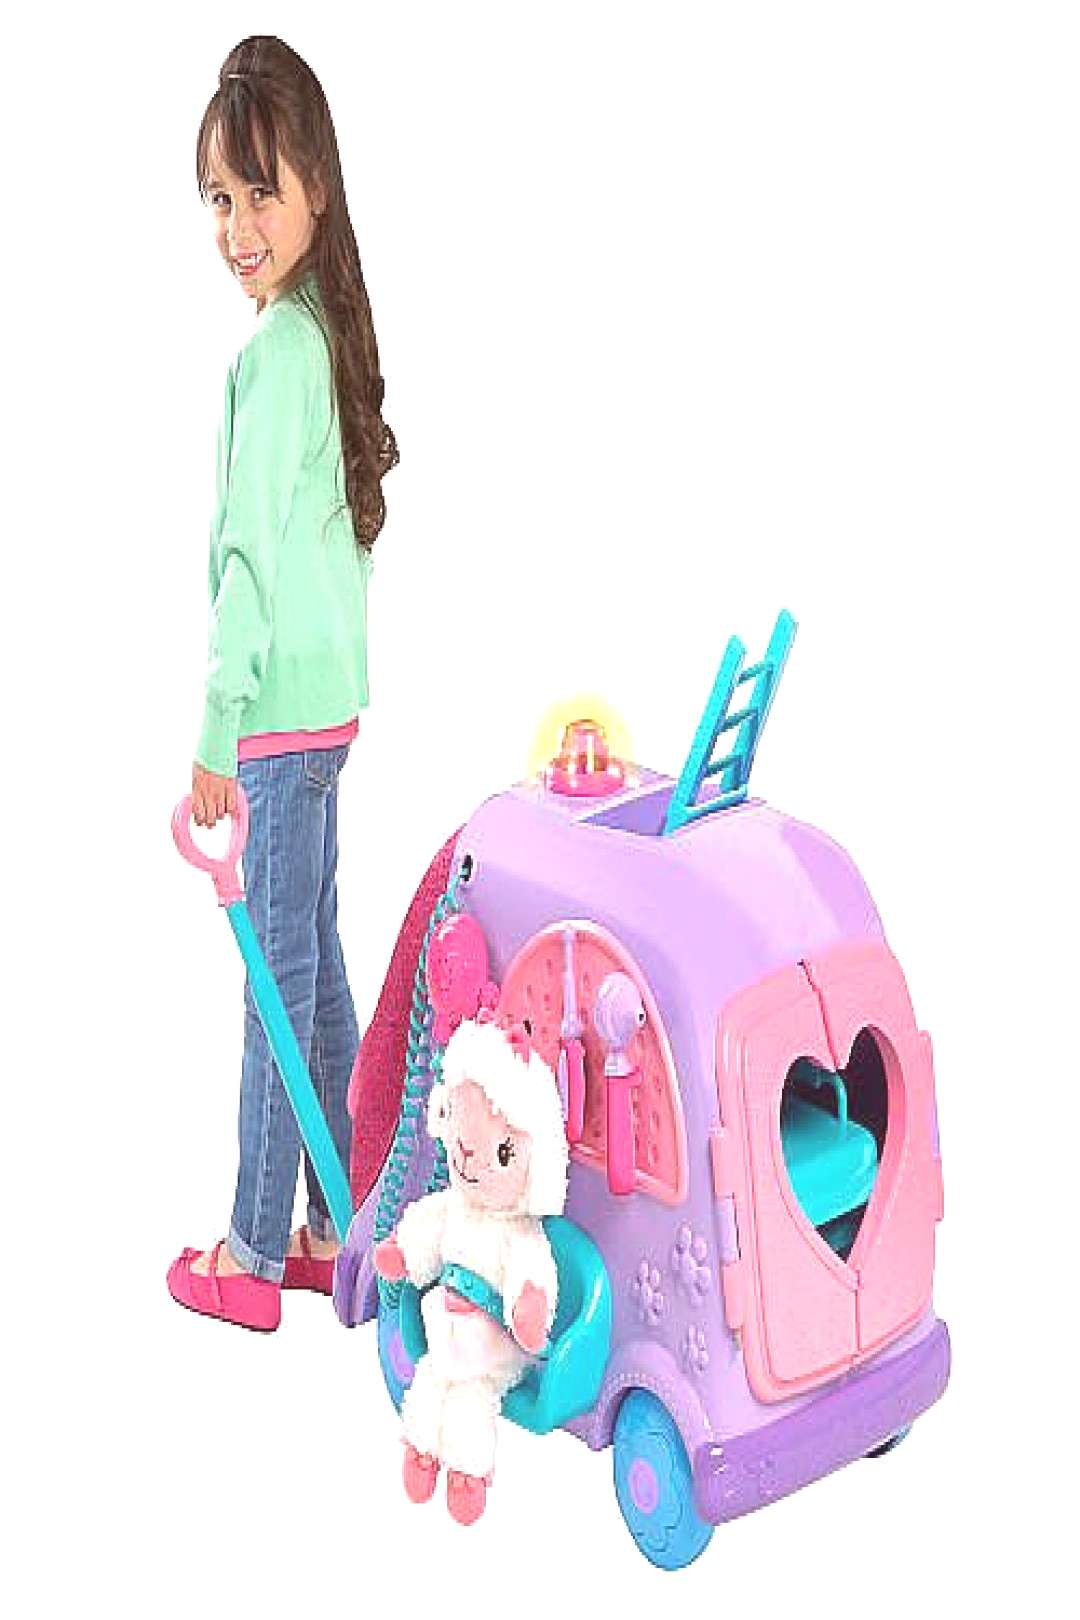 A showstopper of a gift for your little Doc McStuffins fan, the Get Better Talking Mobile Cart ($45